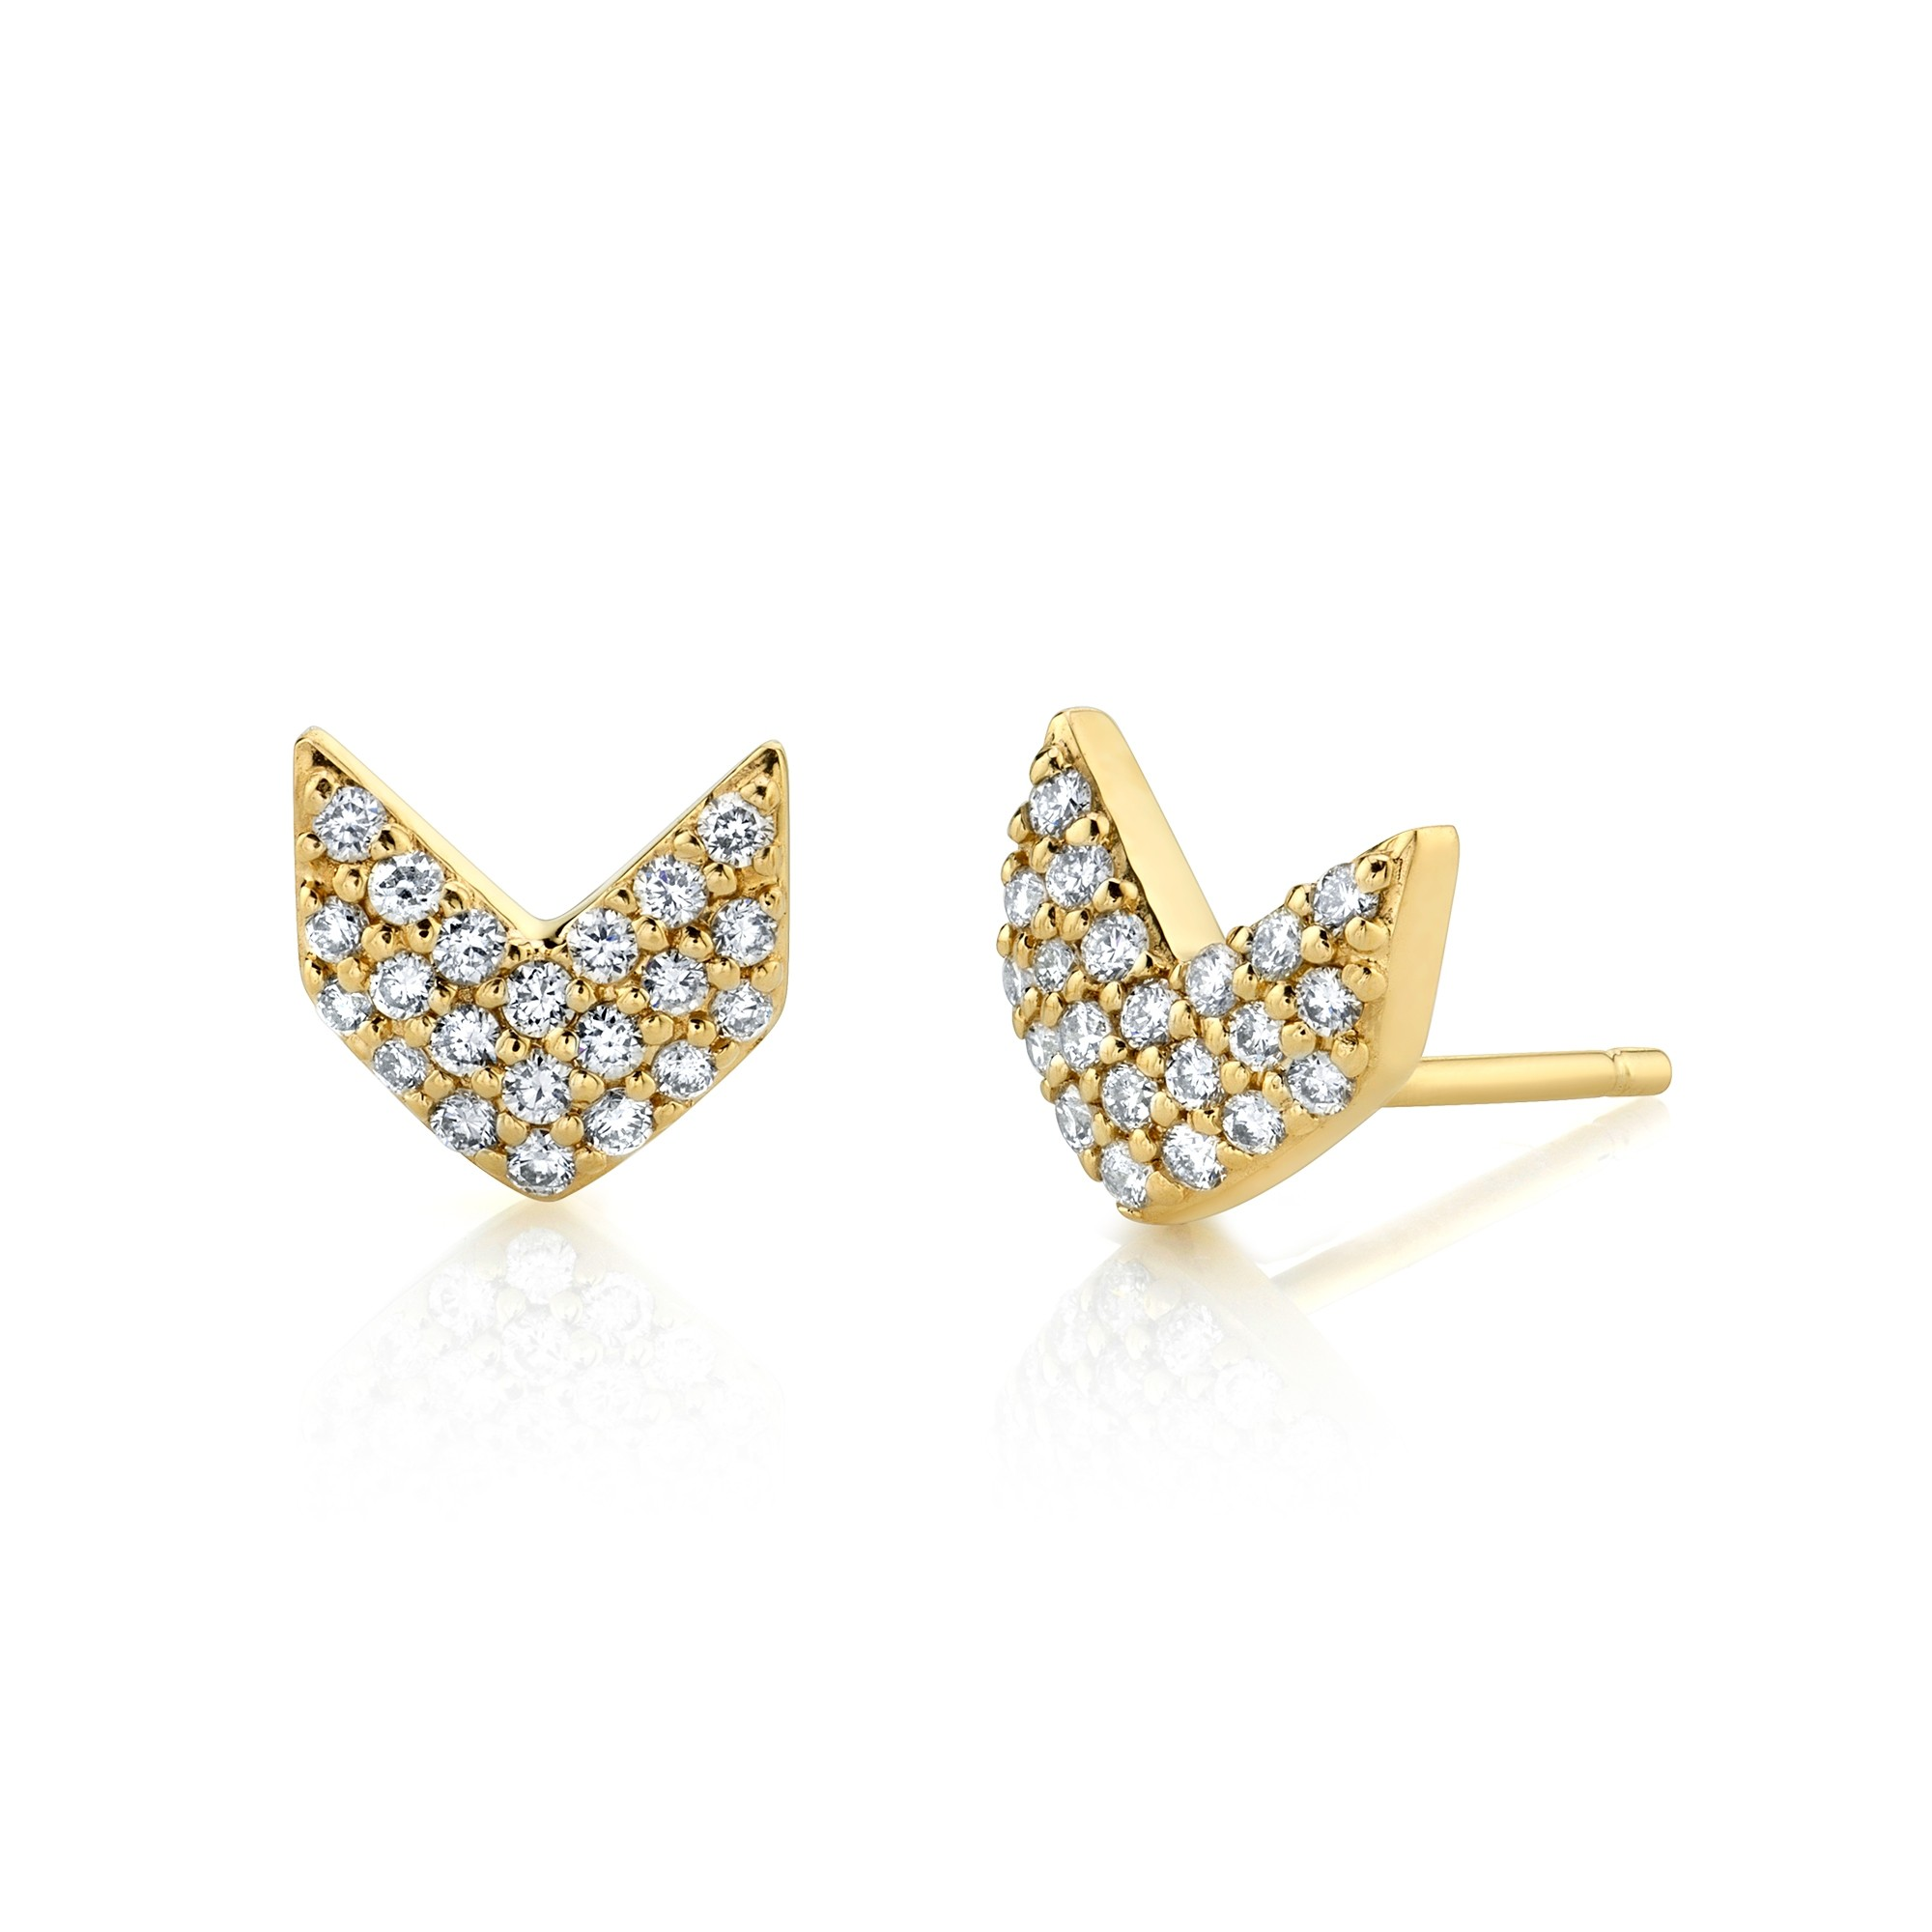 14k Yellow Gold Diamond Pave Chevron Earrings